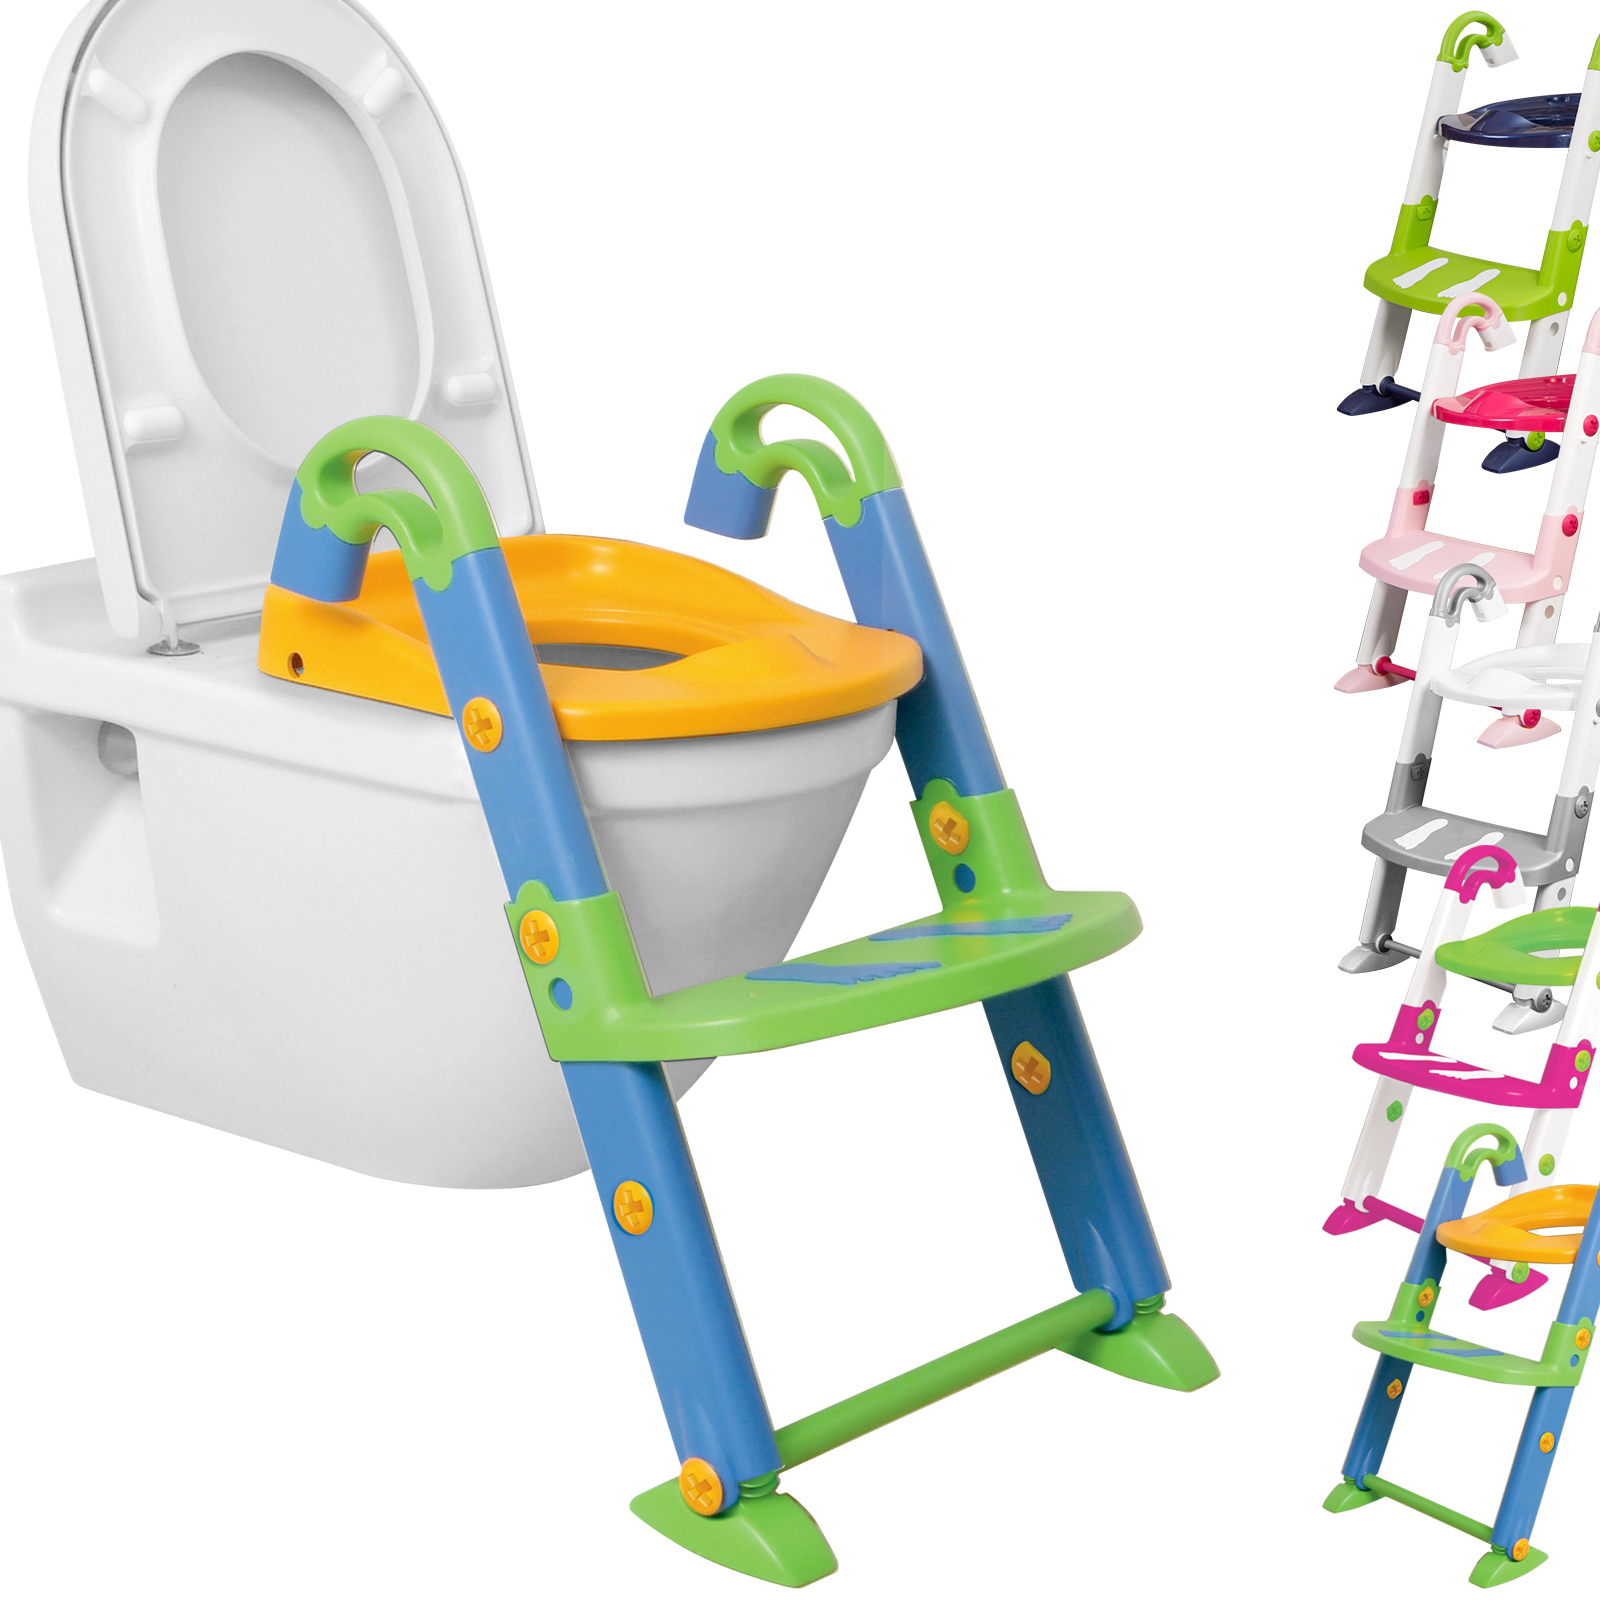 Toilettensitz Für Kinder Kidskit 3in1 Toilettentrainer Kinder Wc Sitz Toilettensitz ...